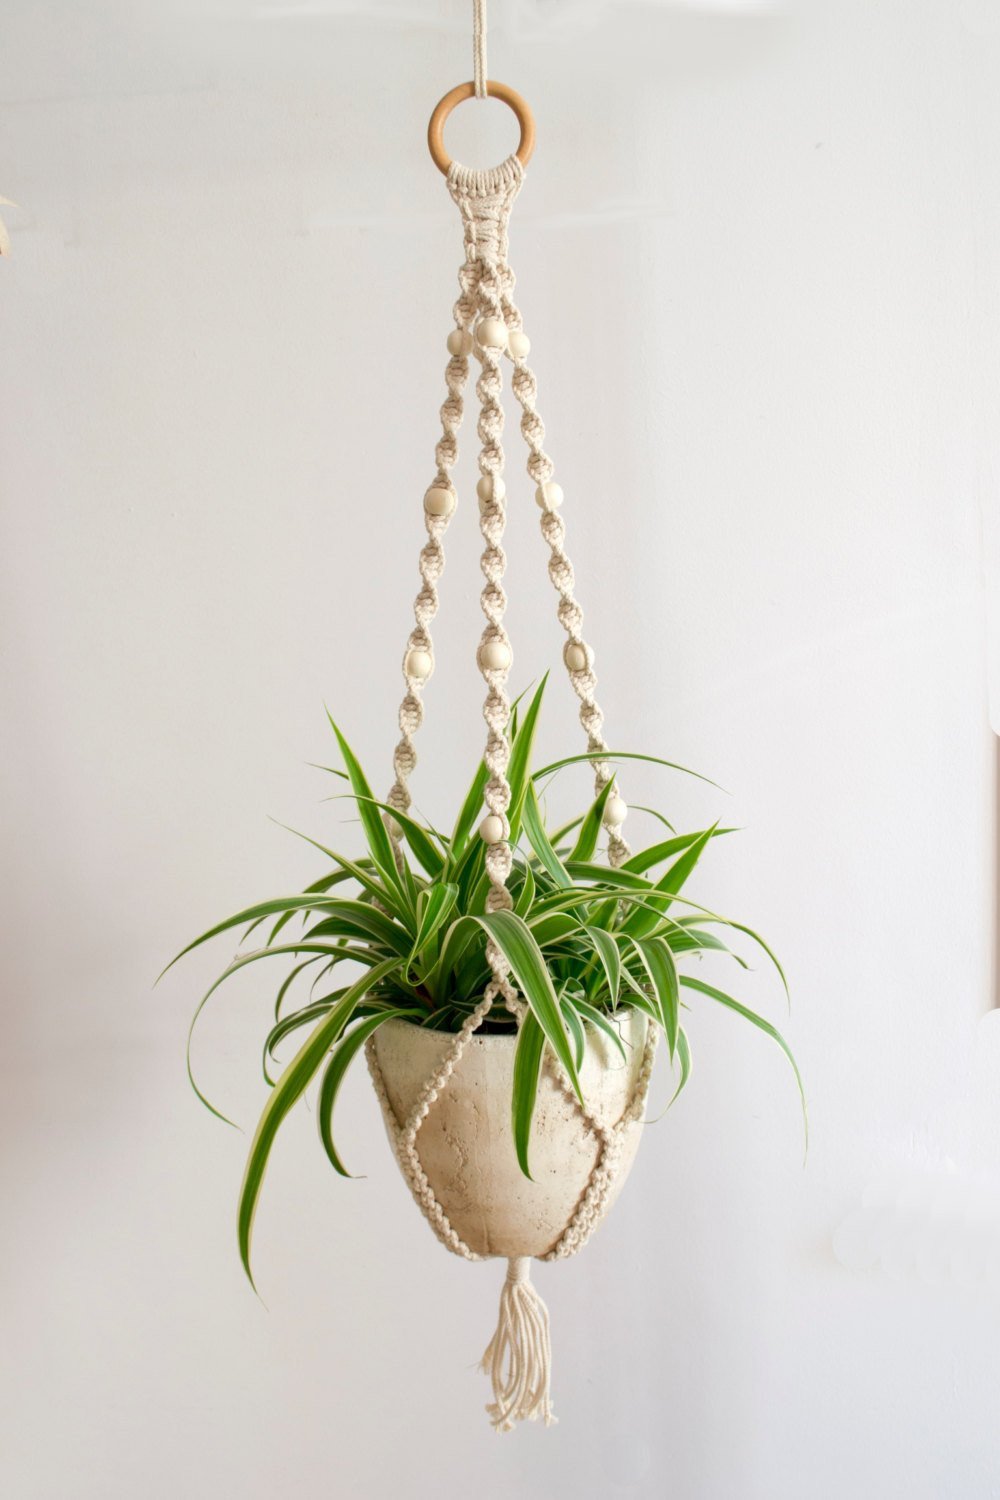 Macrame Plant Hanger Awesome Macrame Plant Hanger Plant Holder Hanging Planter Home Of Attractive 42 Pics Macrame Plant Hanger